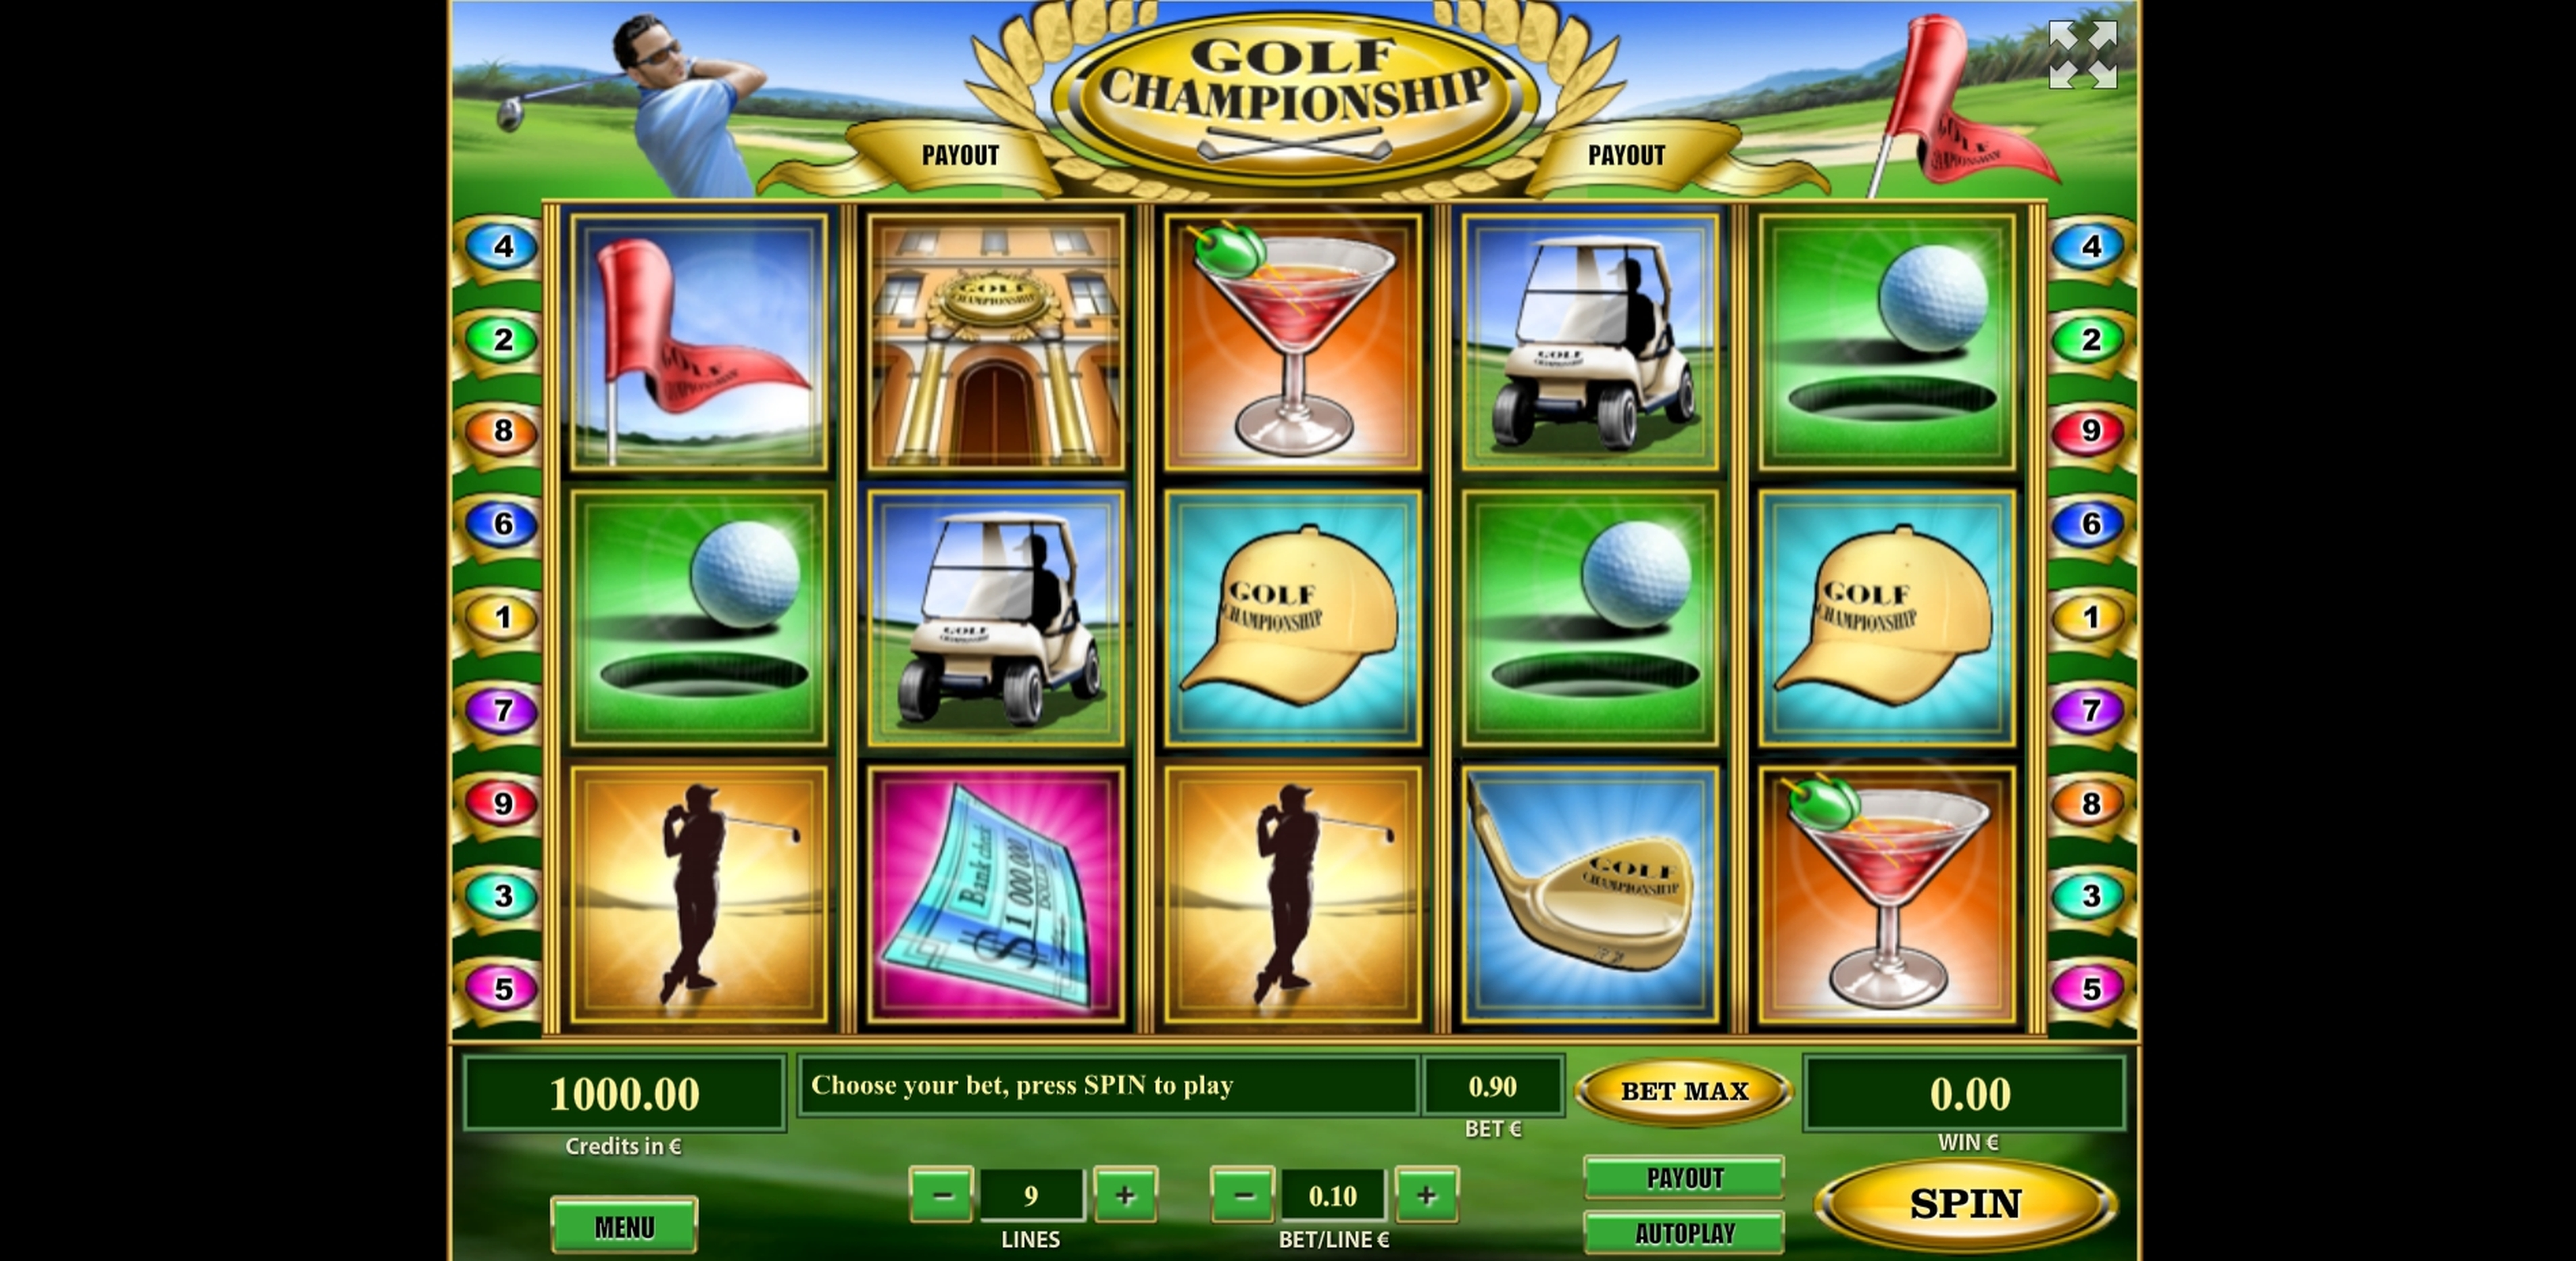 Reels in Golf Championship Slot Game by Tom Horn Gaming